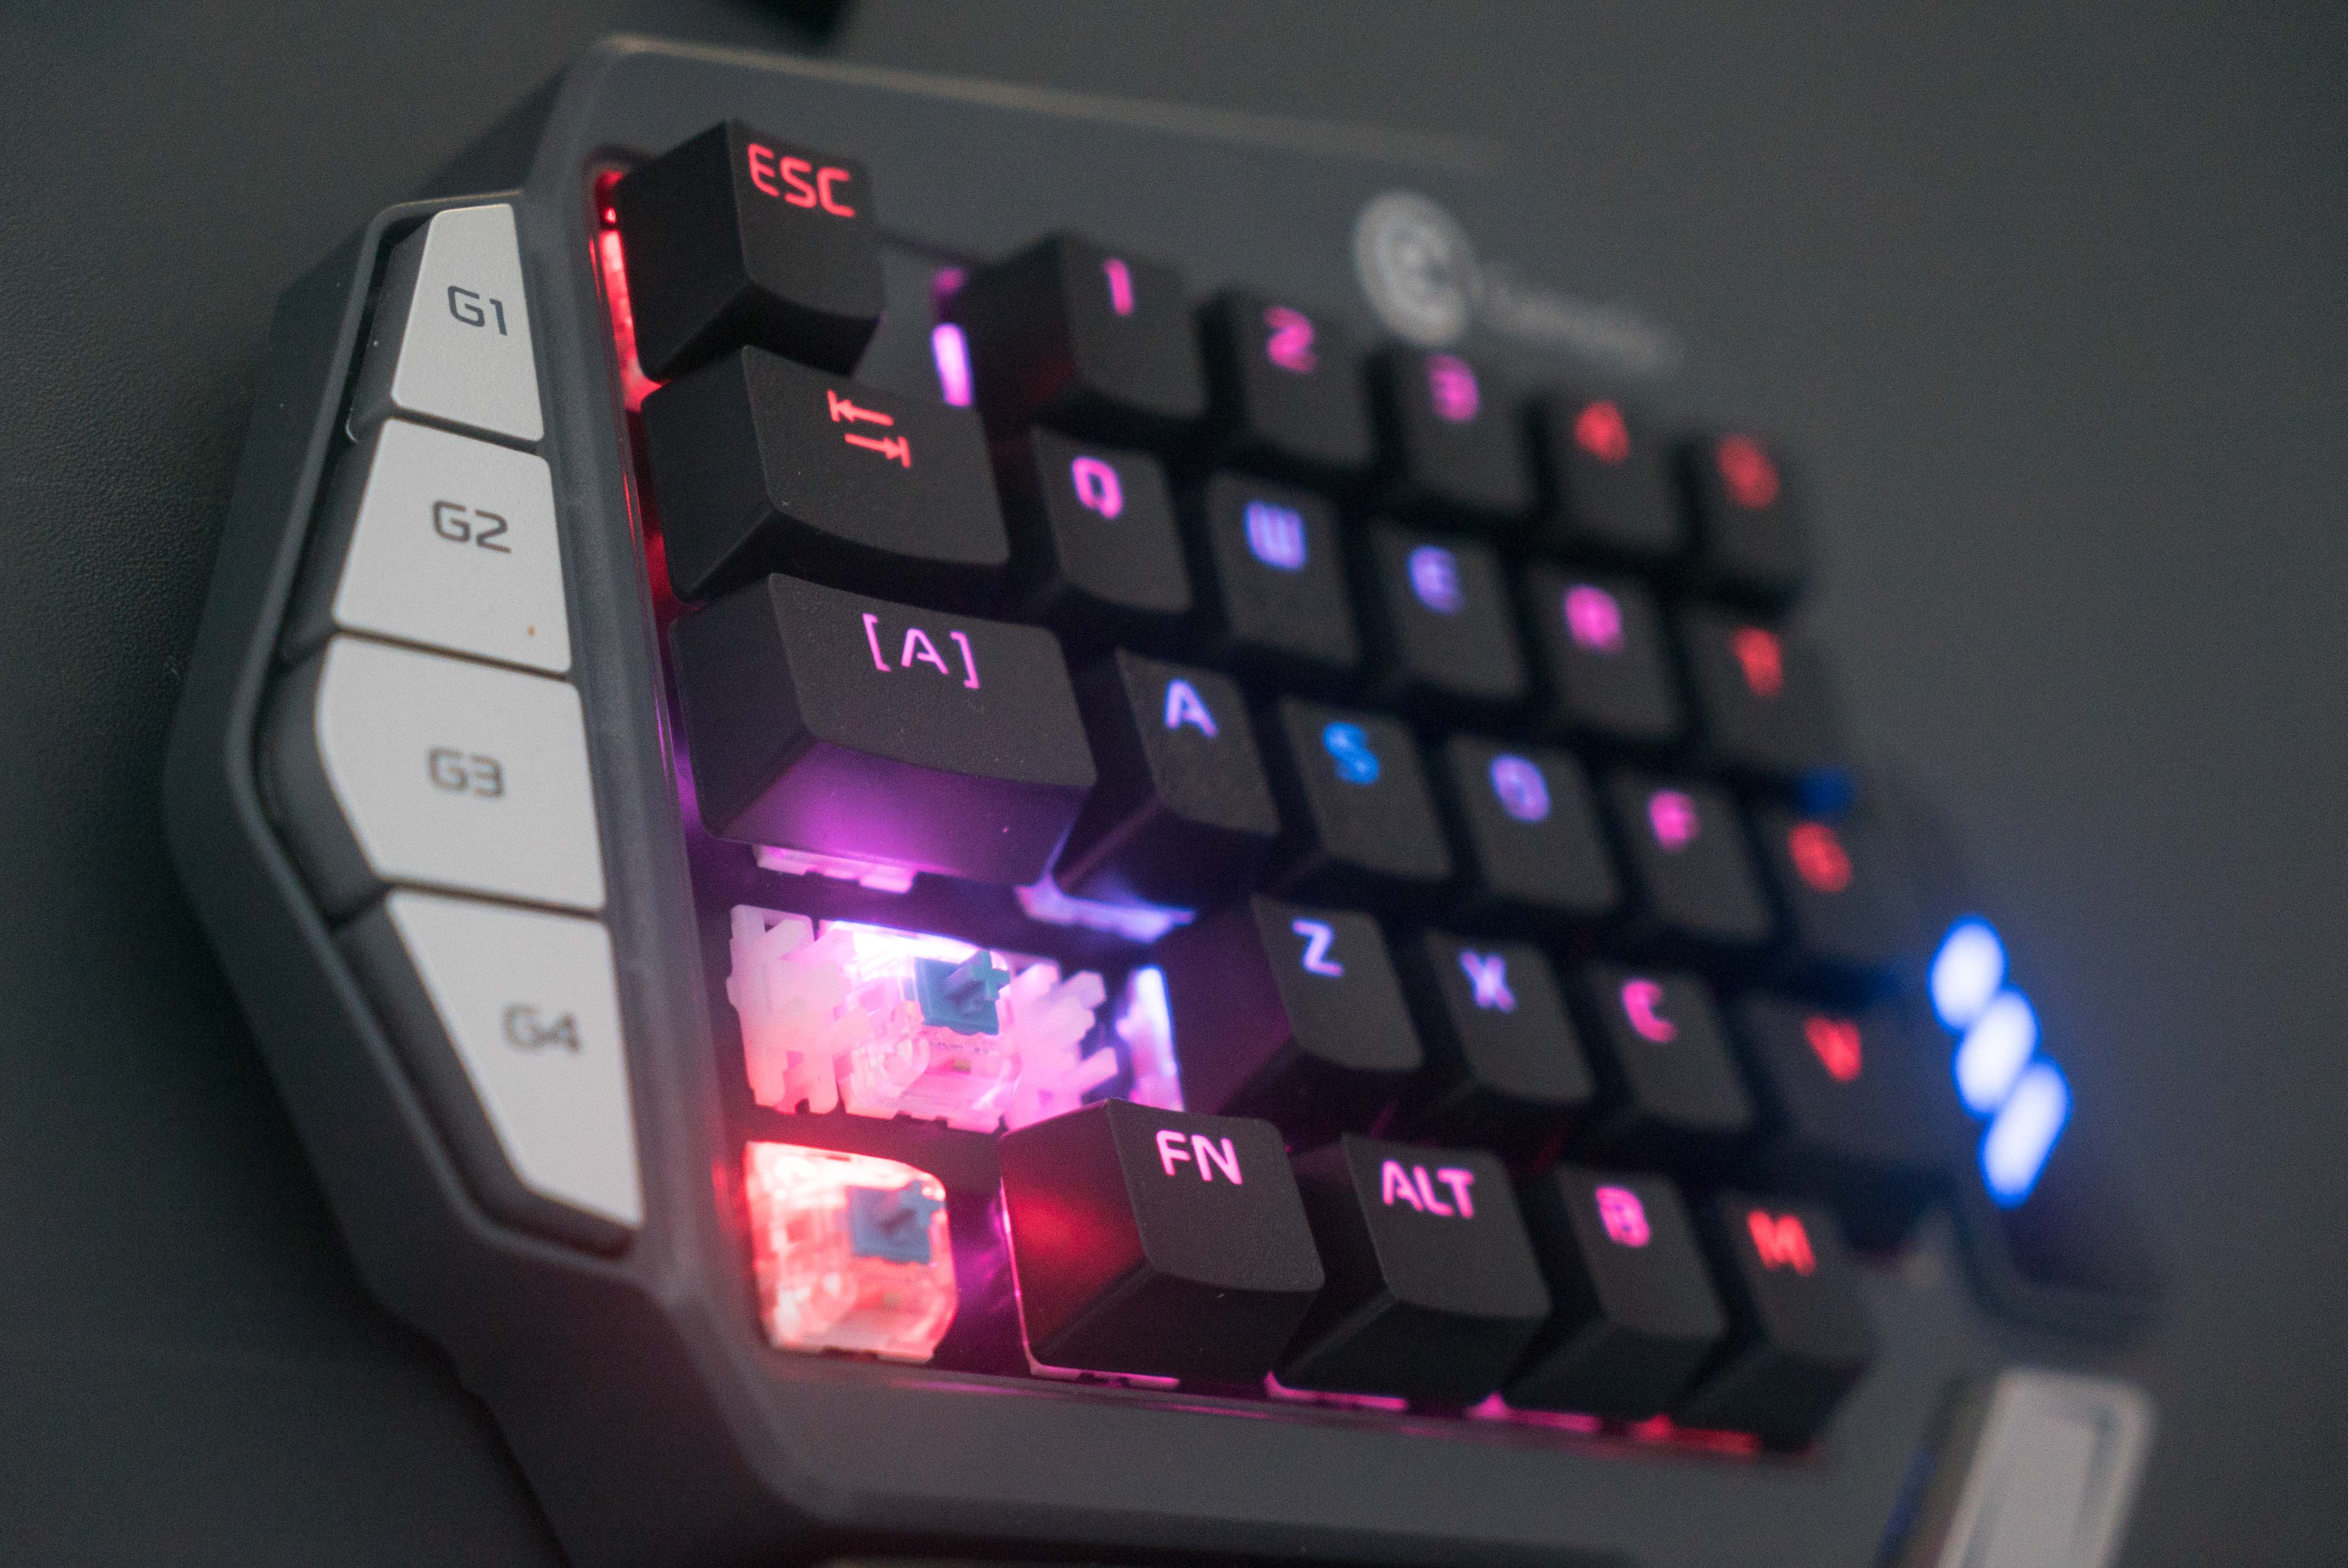 Gamesir's Z1 Keypad by CJ Wang